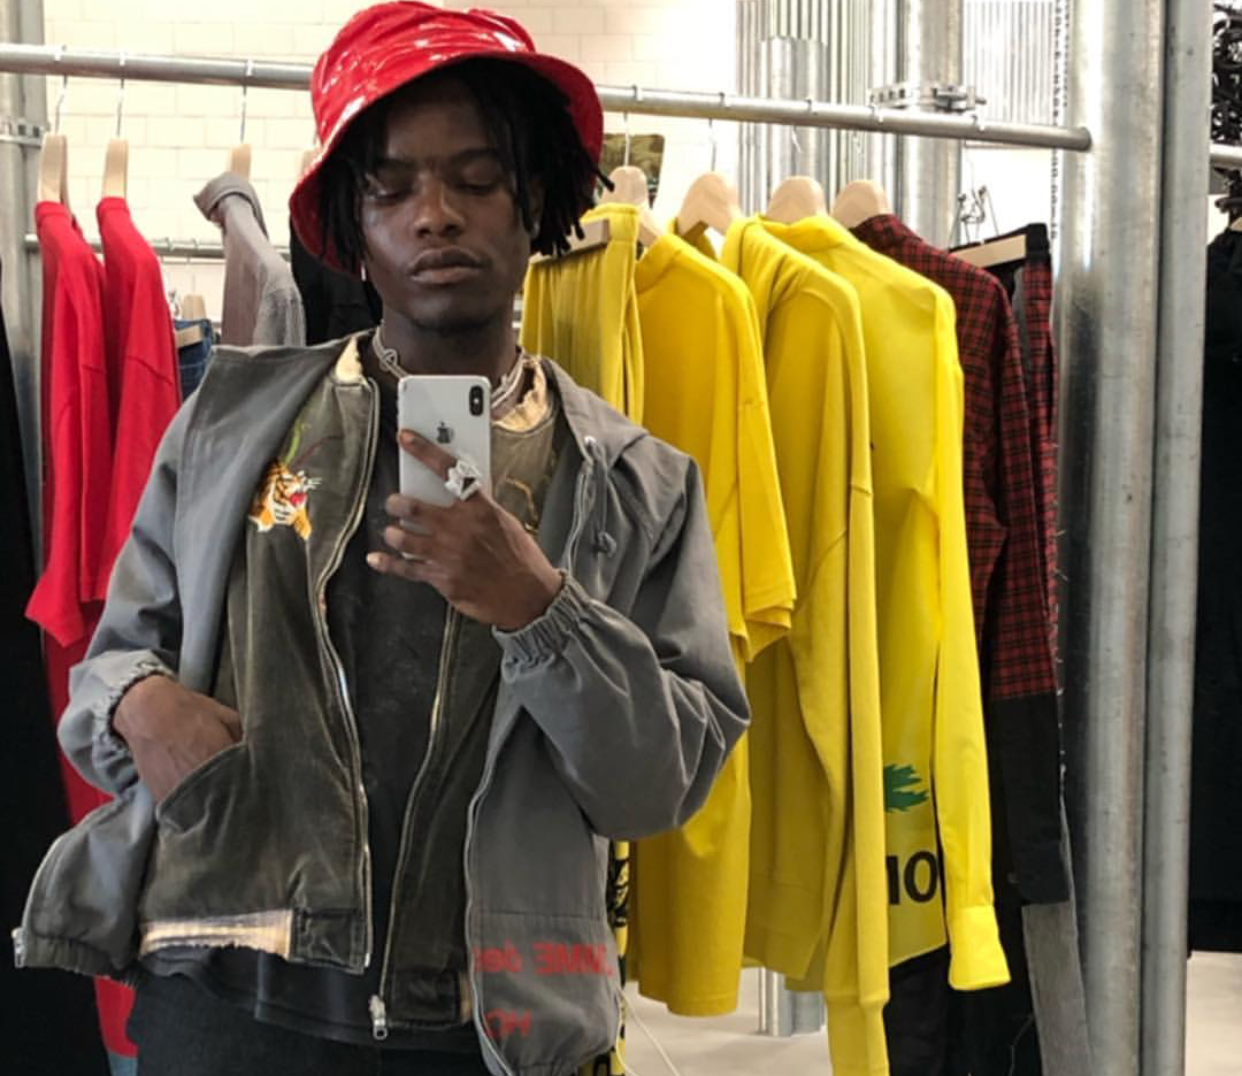 SPOTTED: Ian Connor in Unreleased YEEZY 700 Sneakers